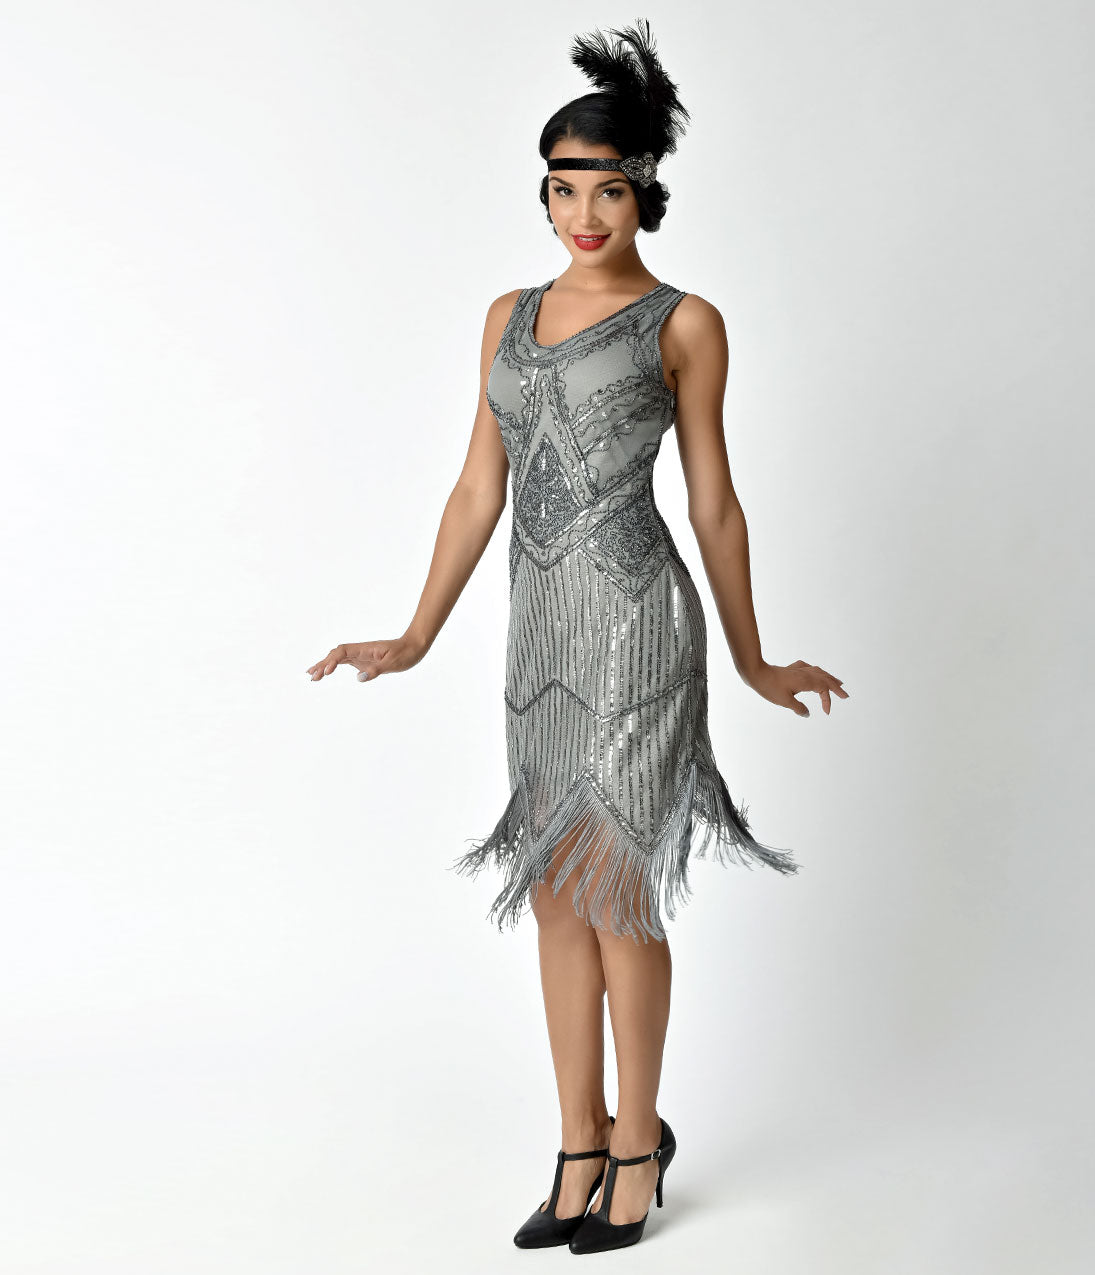 Unique_Vintage_1920s_Grey_Beaded_Sequin_Juliette_Fringe_Flapper_Dress_1_4622060d 7423 4668 af0e 06d0fe07772a